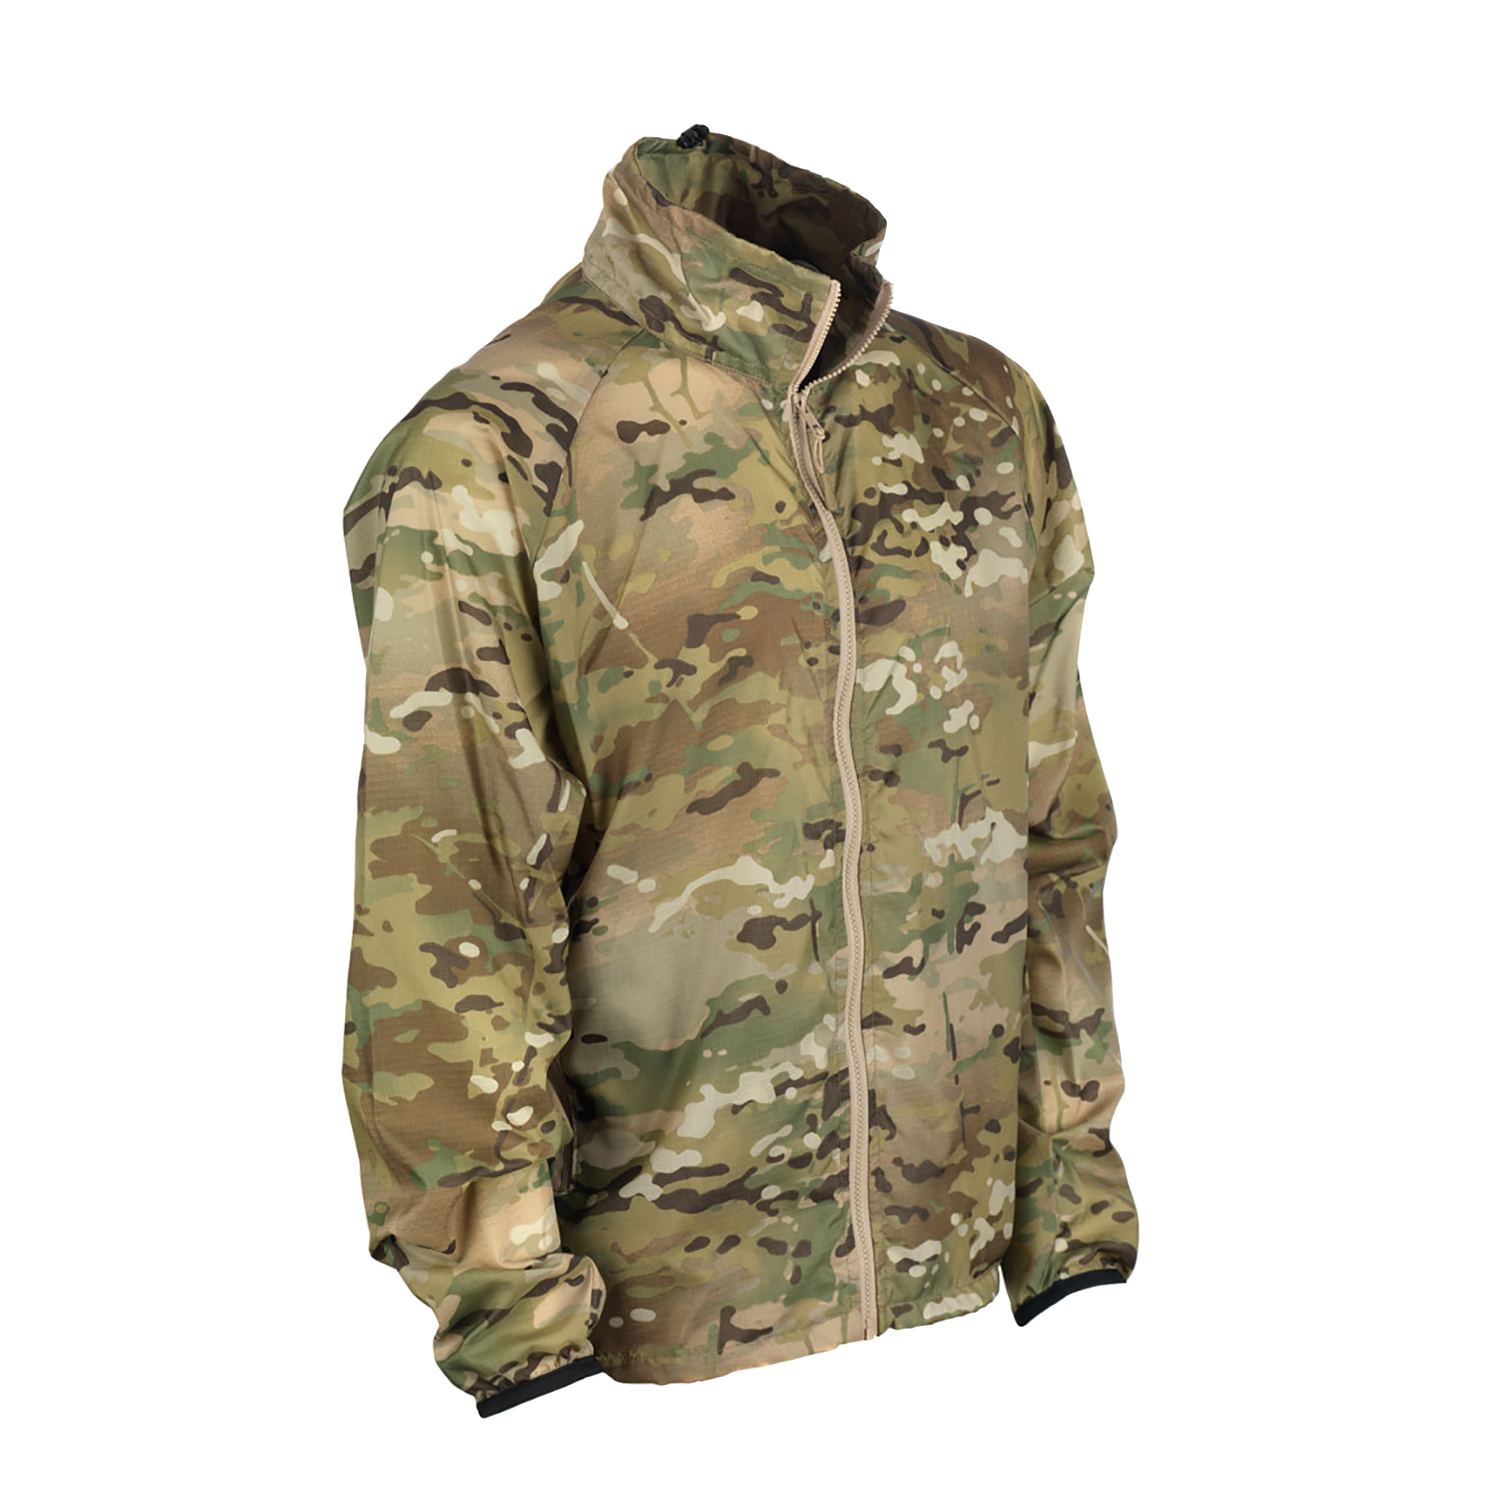 5.11 Tactical 5 in 1 Jacket from Nightgear UK